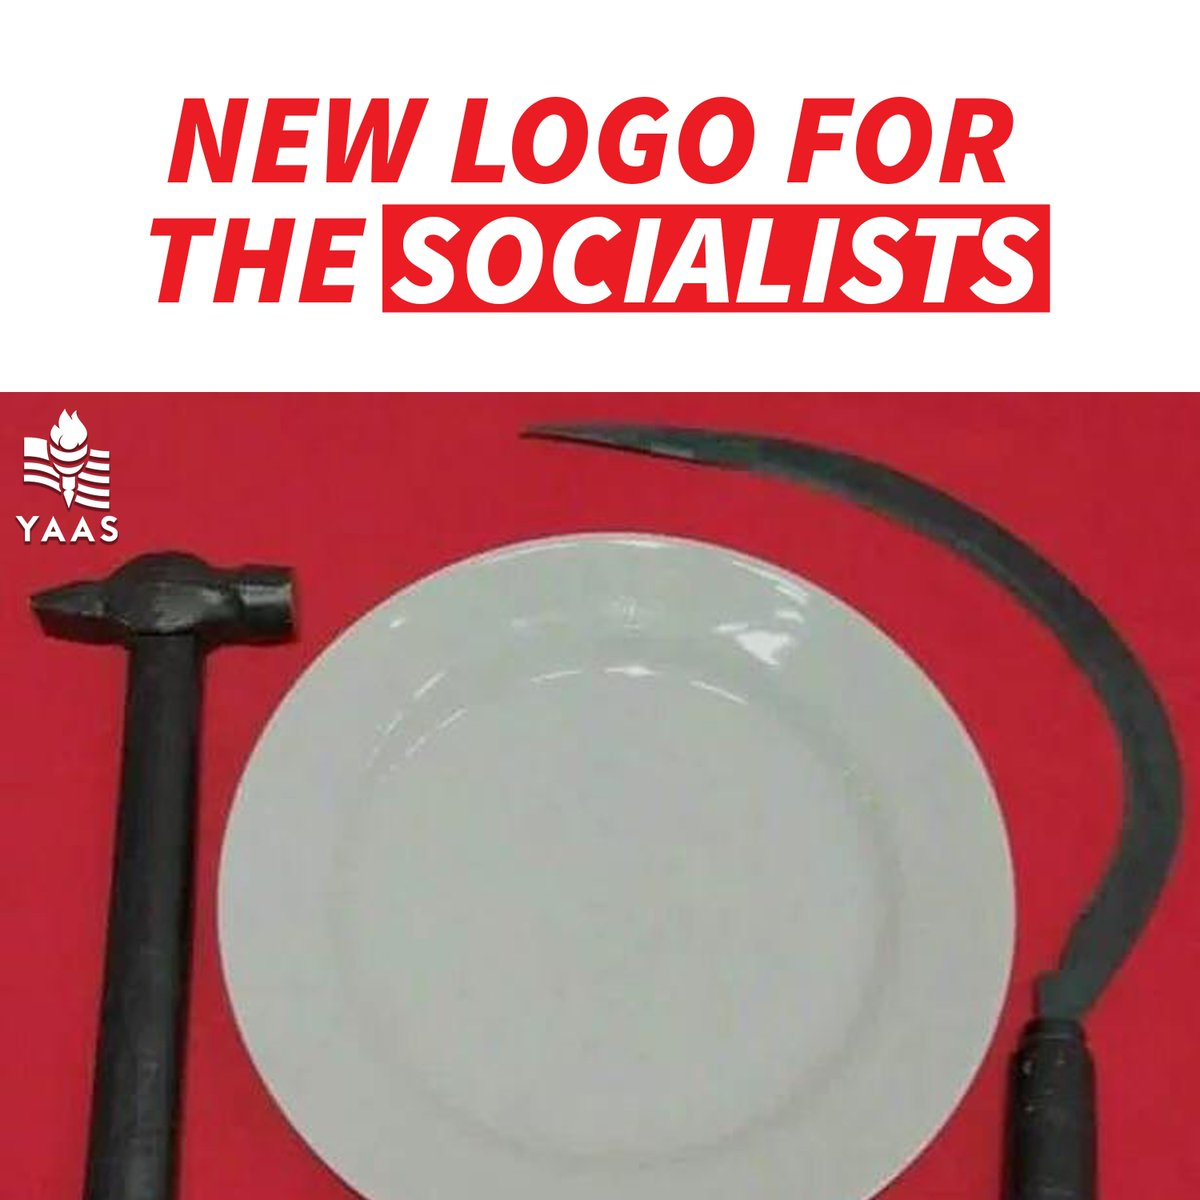 This is perfection. Socialism and empty plates go hand-in-hand.